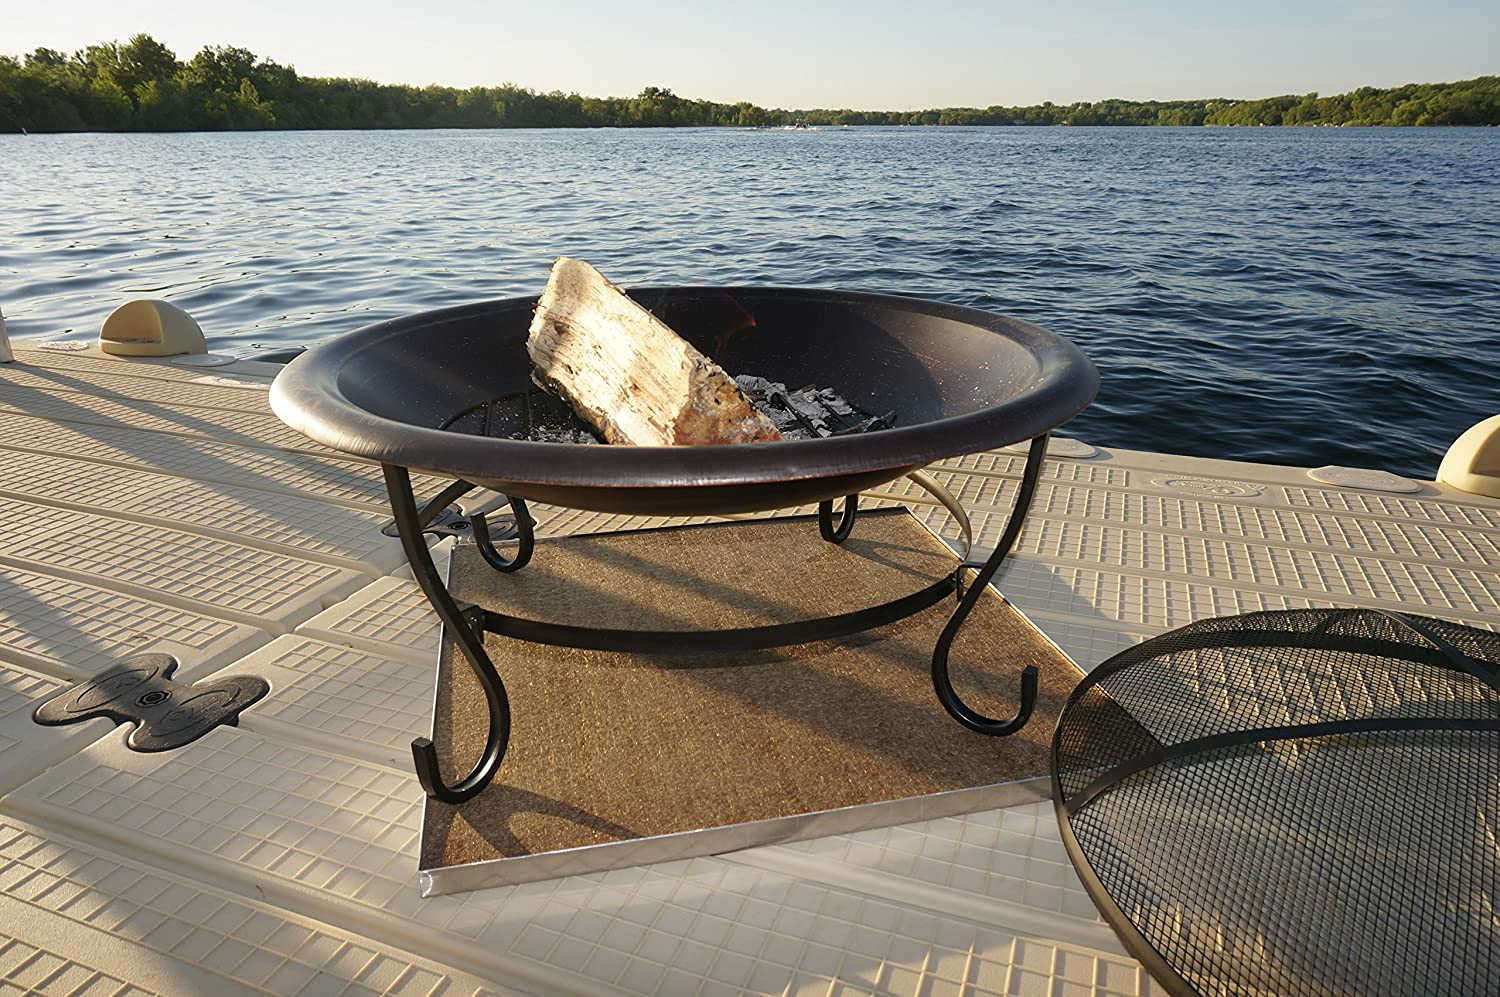 Can I Use A Fire Pit On My Deck? - OUTDOOR FIRE PITS ...